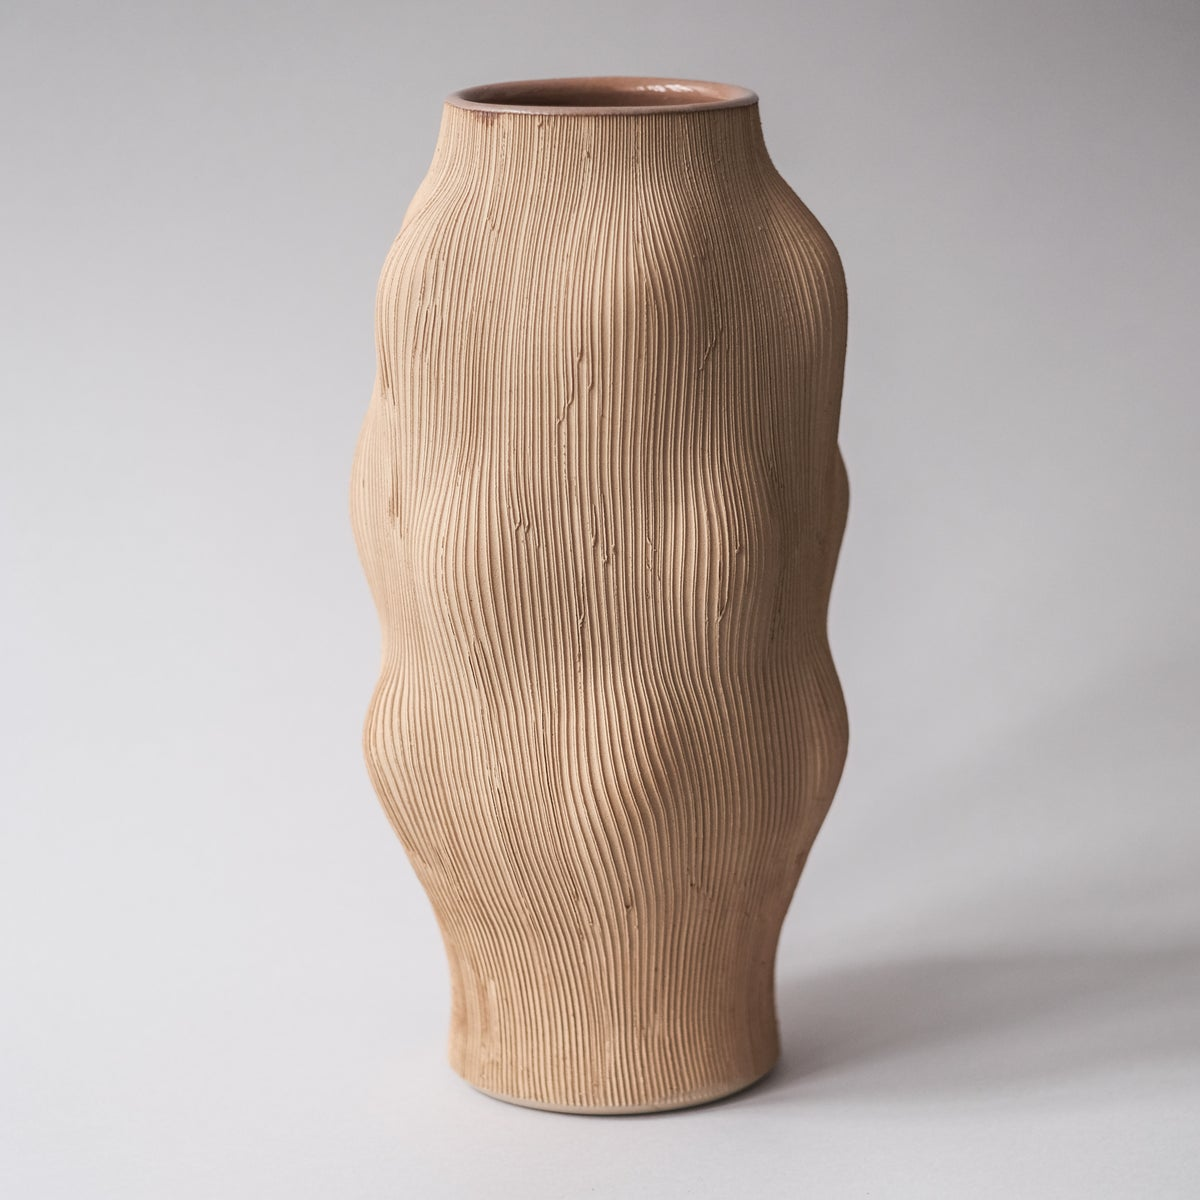 Image of FLUTED KUNST VASE IN YELLOW STONEWARE, GLAZED INTERIOR- RAW EXTERIOR